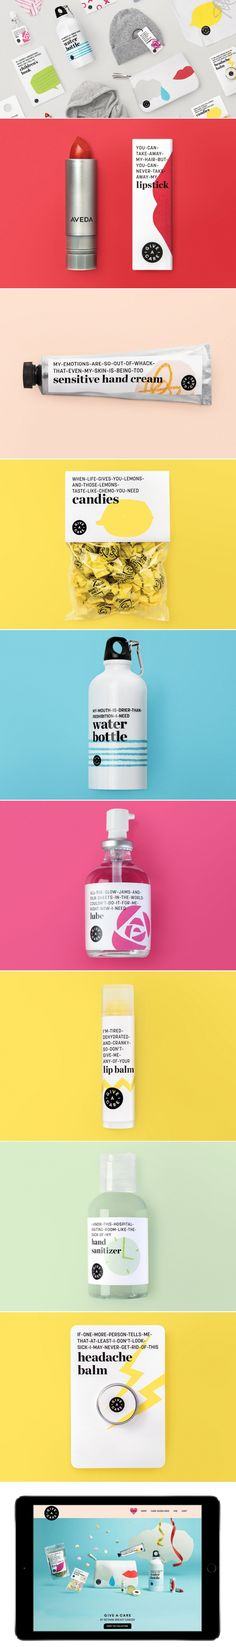 Rethink Breast Cancer Give-A-Care Collection — The Dieline - Branding & Packaging Design